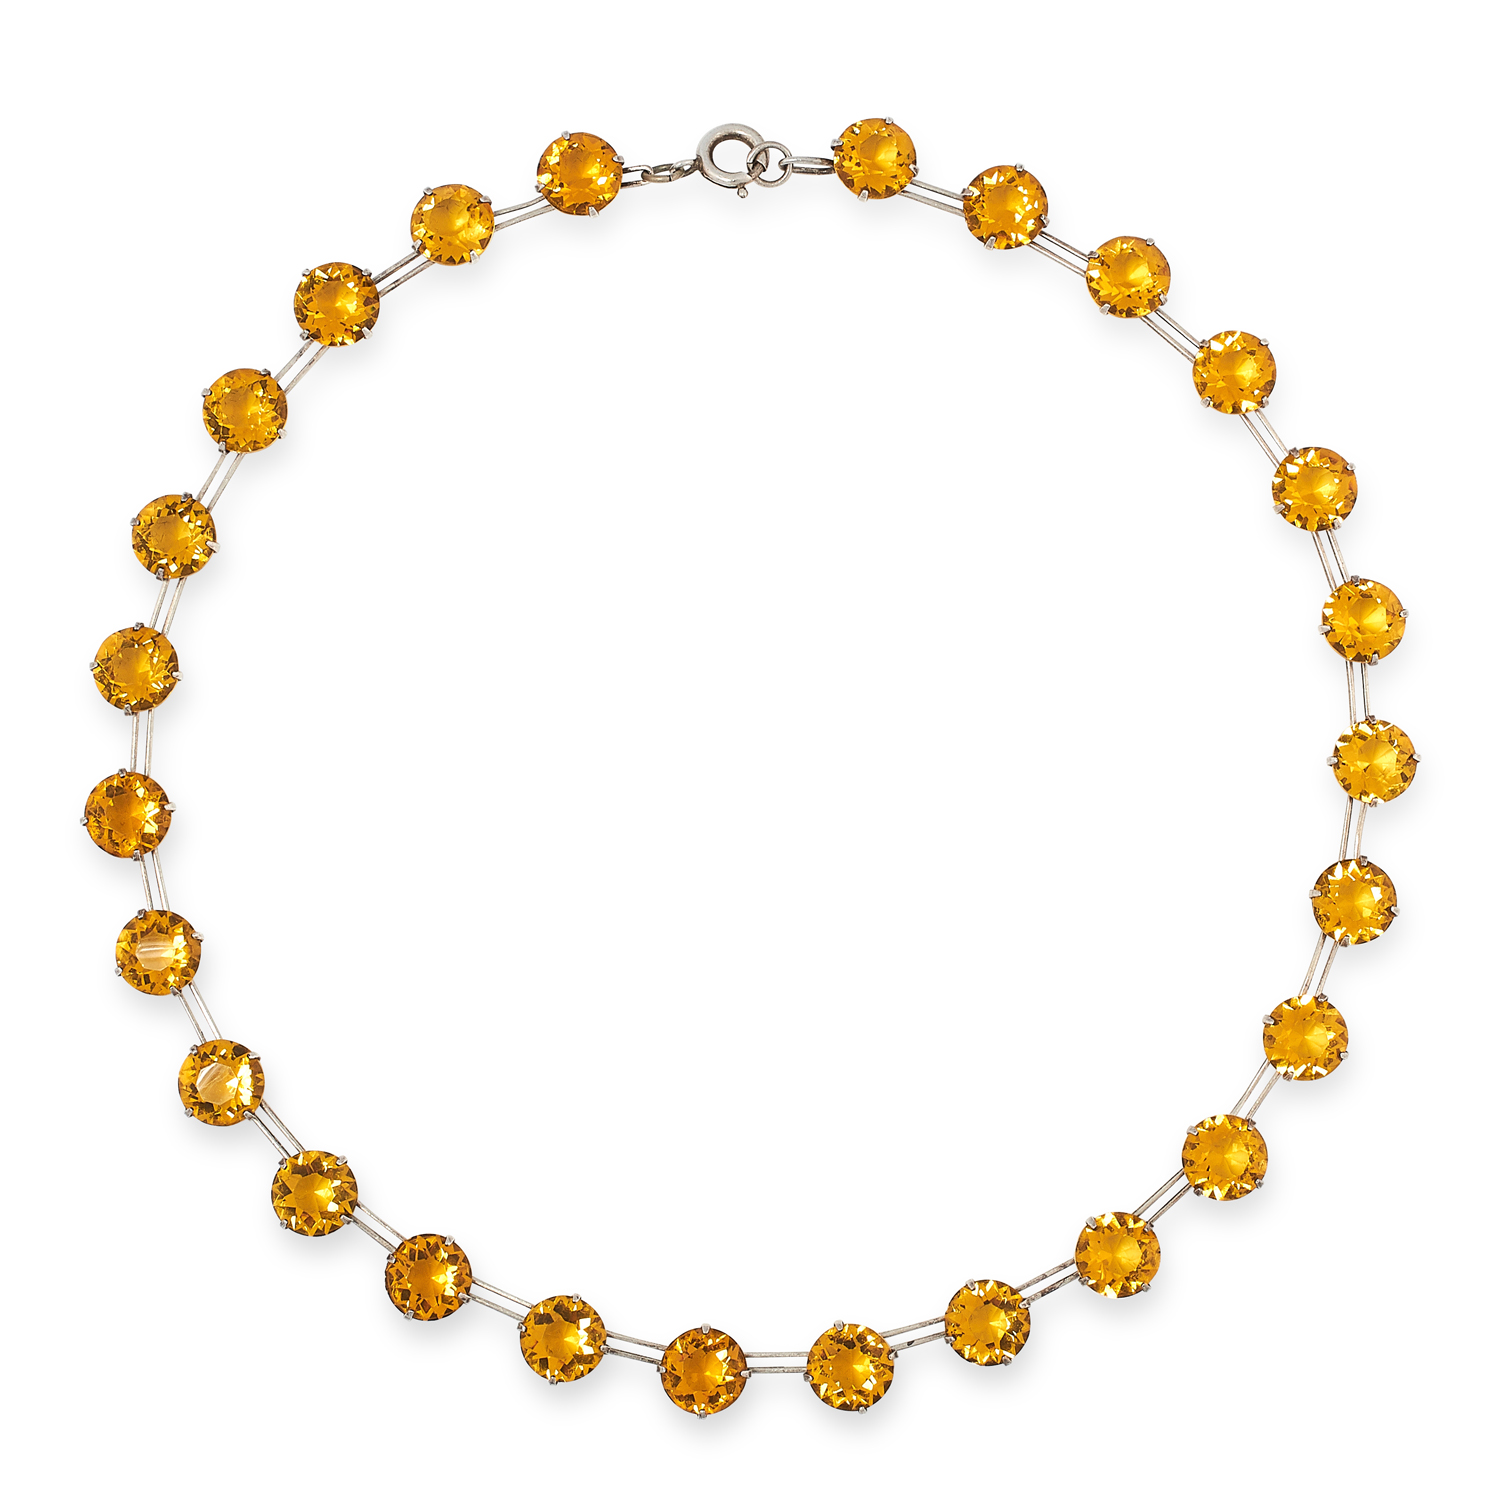 AN ANTIQUE SCOTTISH HARDSTONE AND CITRINE BRACELET comprising of carved and polished pieces of - Image 2 of 2